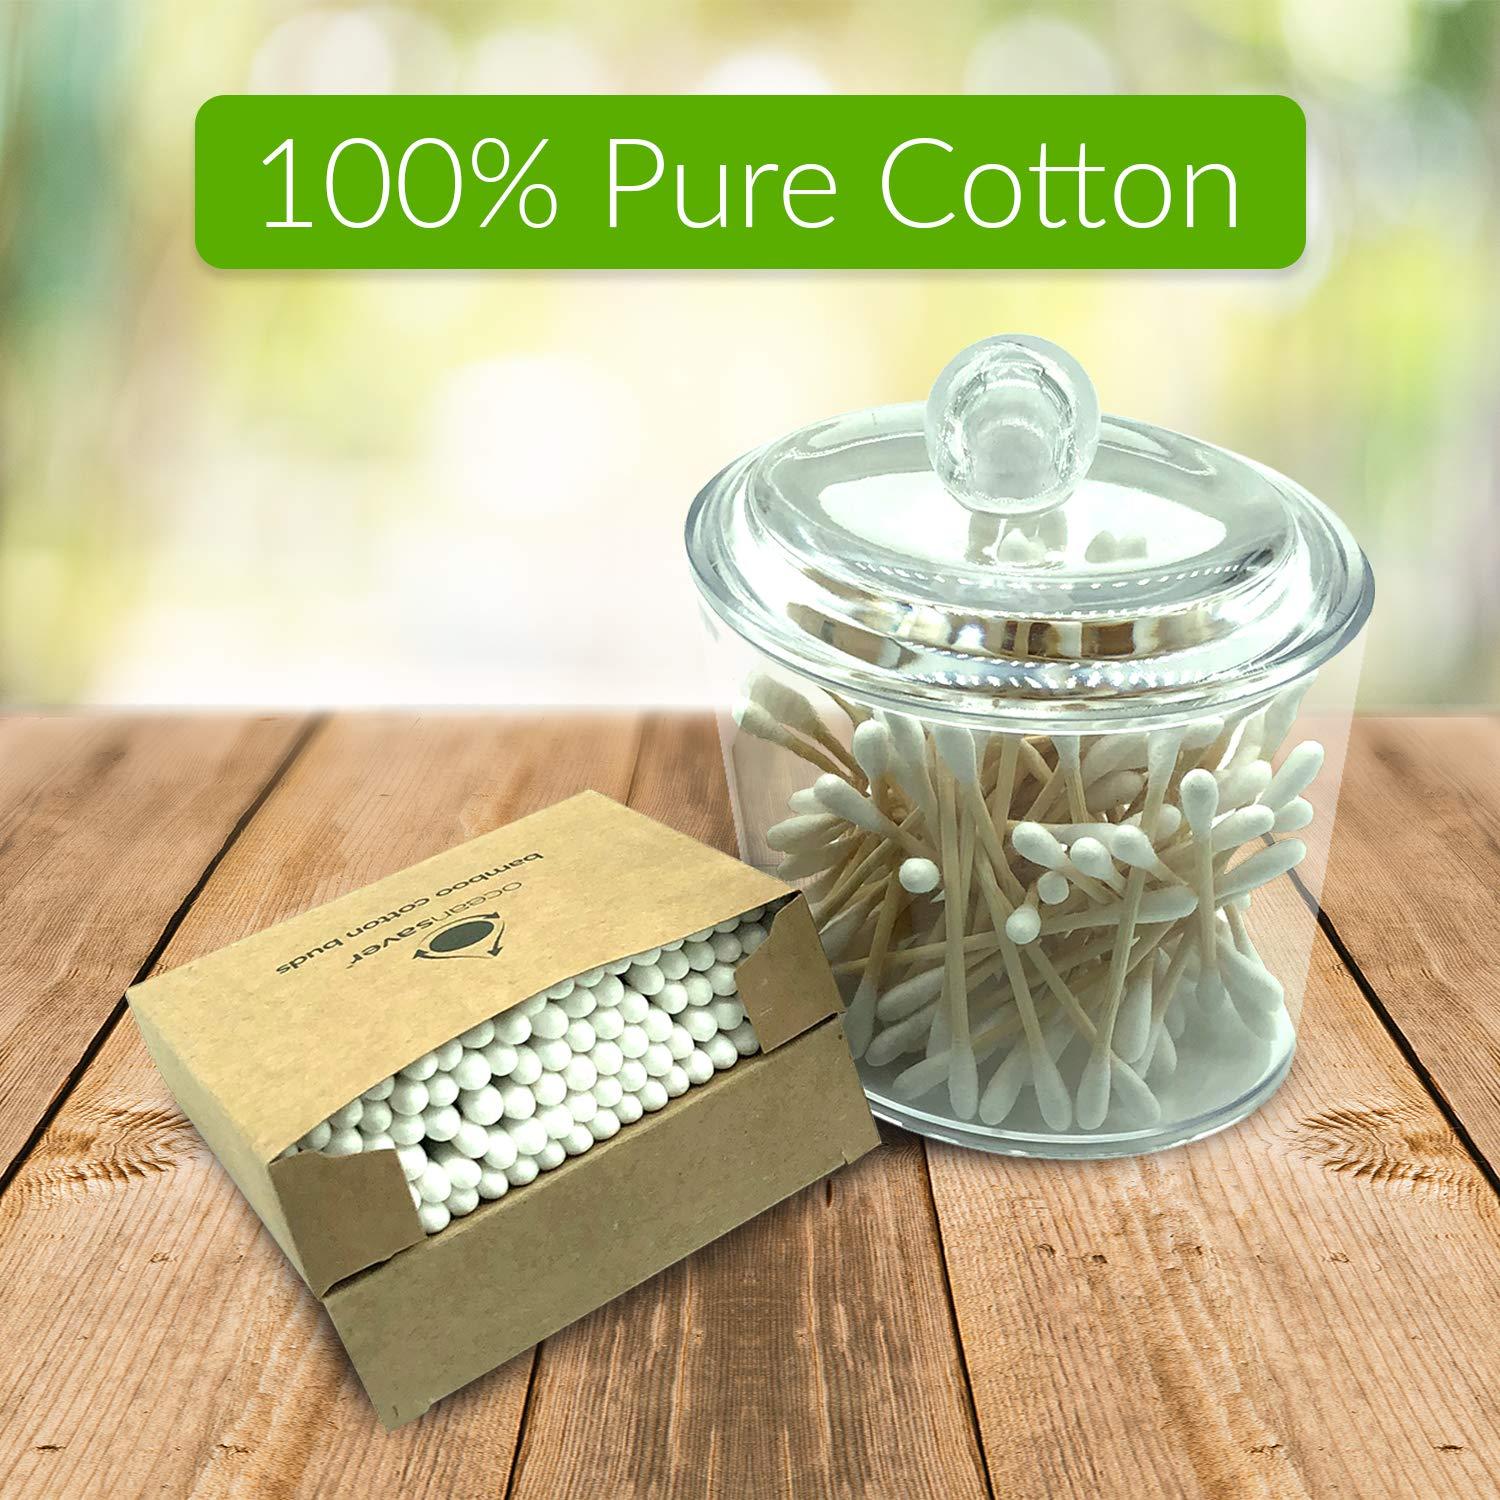 100/% Natural Cotton 100/% Bio-degradable 600pk Bamboo Cotton Buds by ocean saver 6 x 100 Environmentally Friendly Plastic Free Packaging